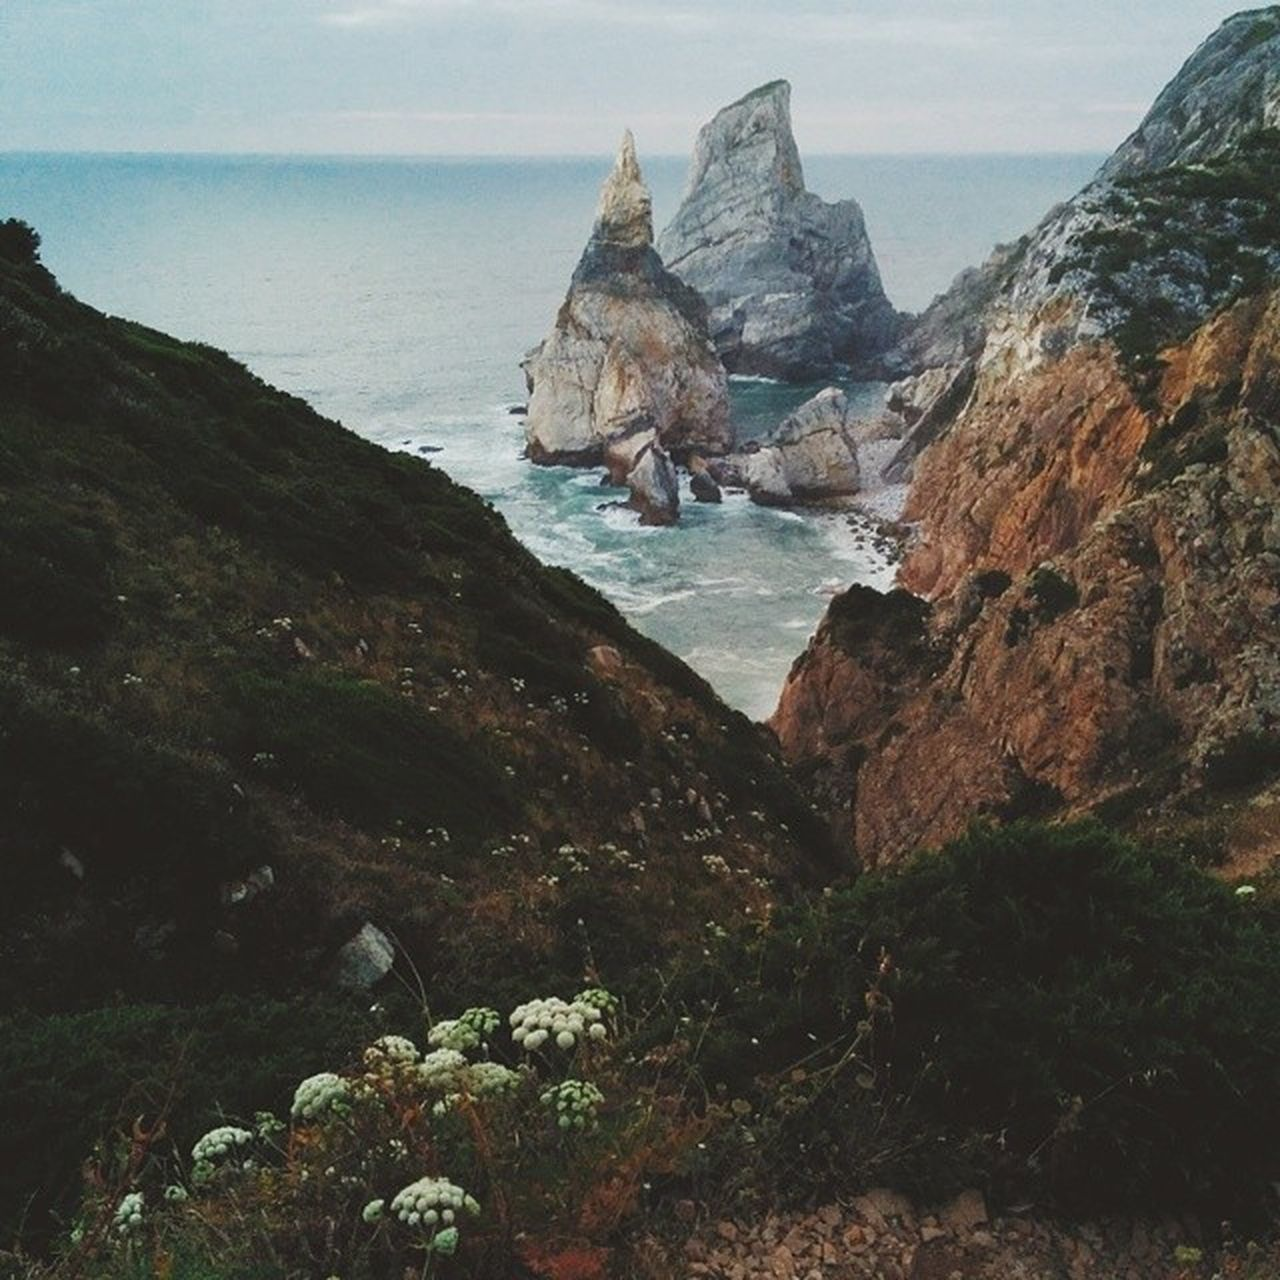 mountain, rock - object, rock formation, nature, scenics, beauty in nature, water, tranquility, no people, sea, tranquil scene, day, sky, cliff, outdoors